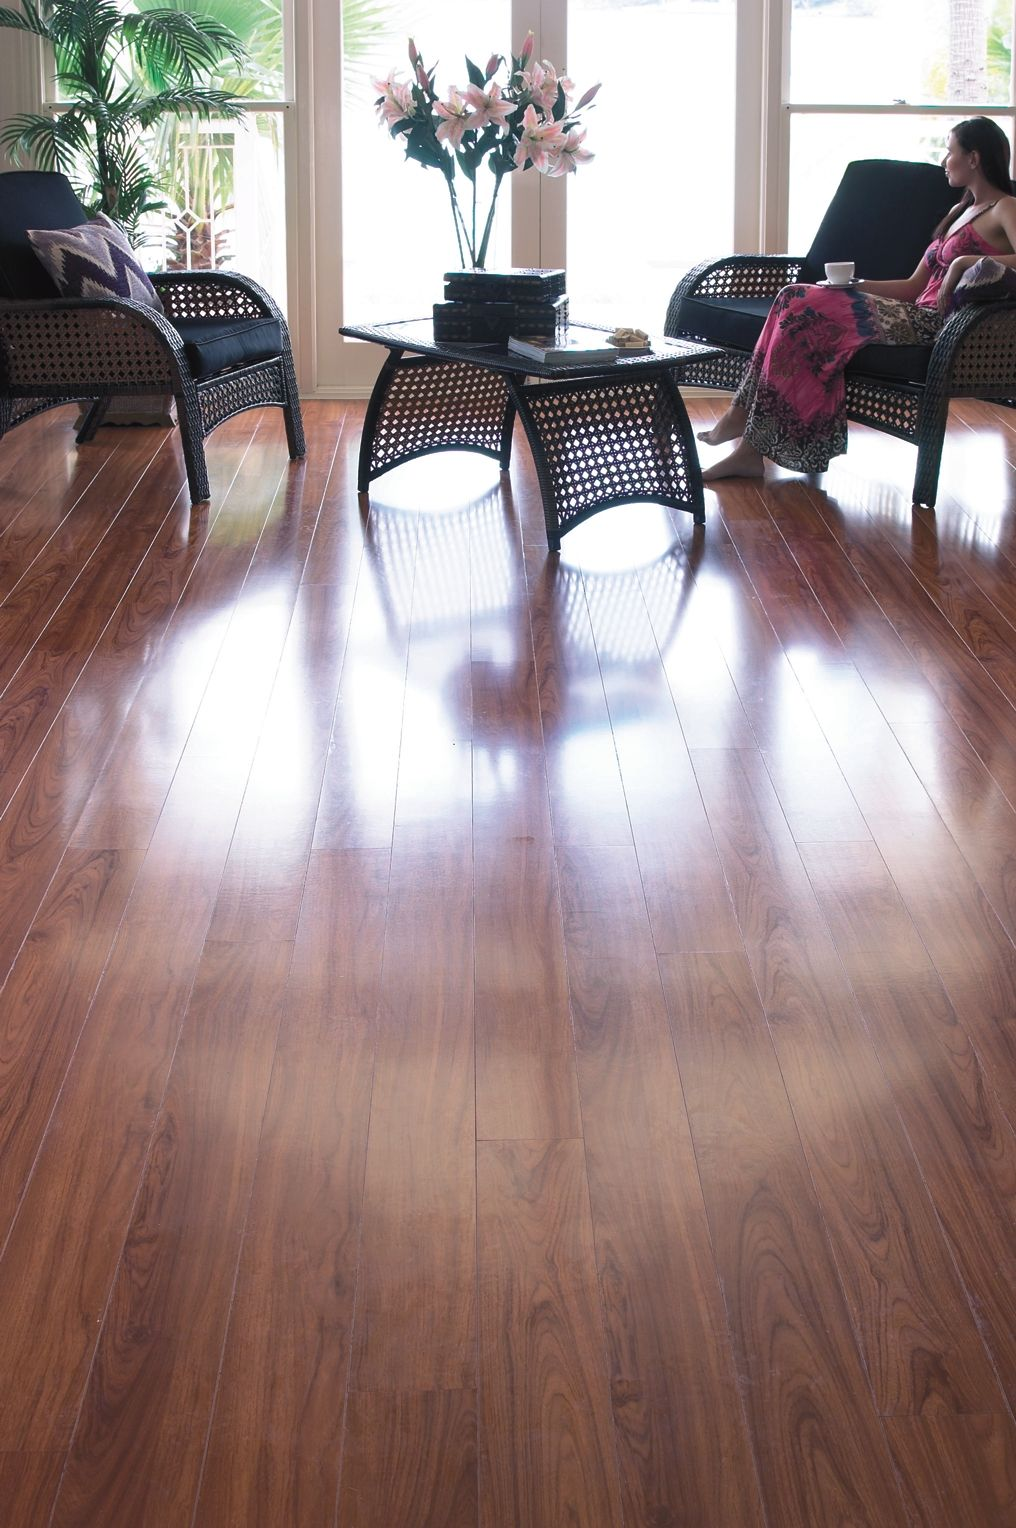 How durable is laminate flooring - Timber Impressions African Cherry Laminate Flooring Combines Realistic Print Technology With A High